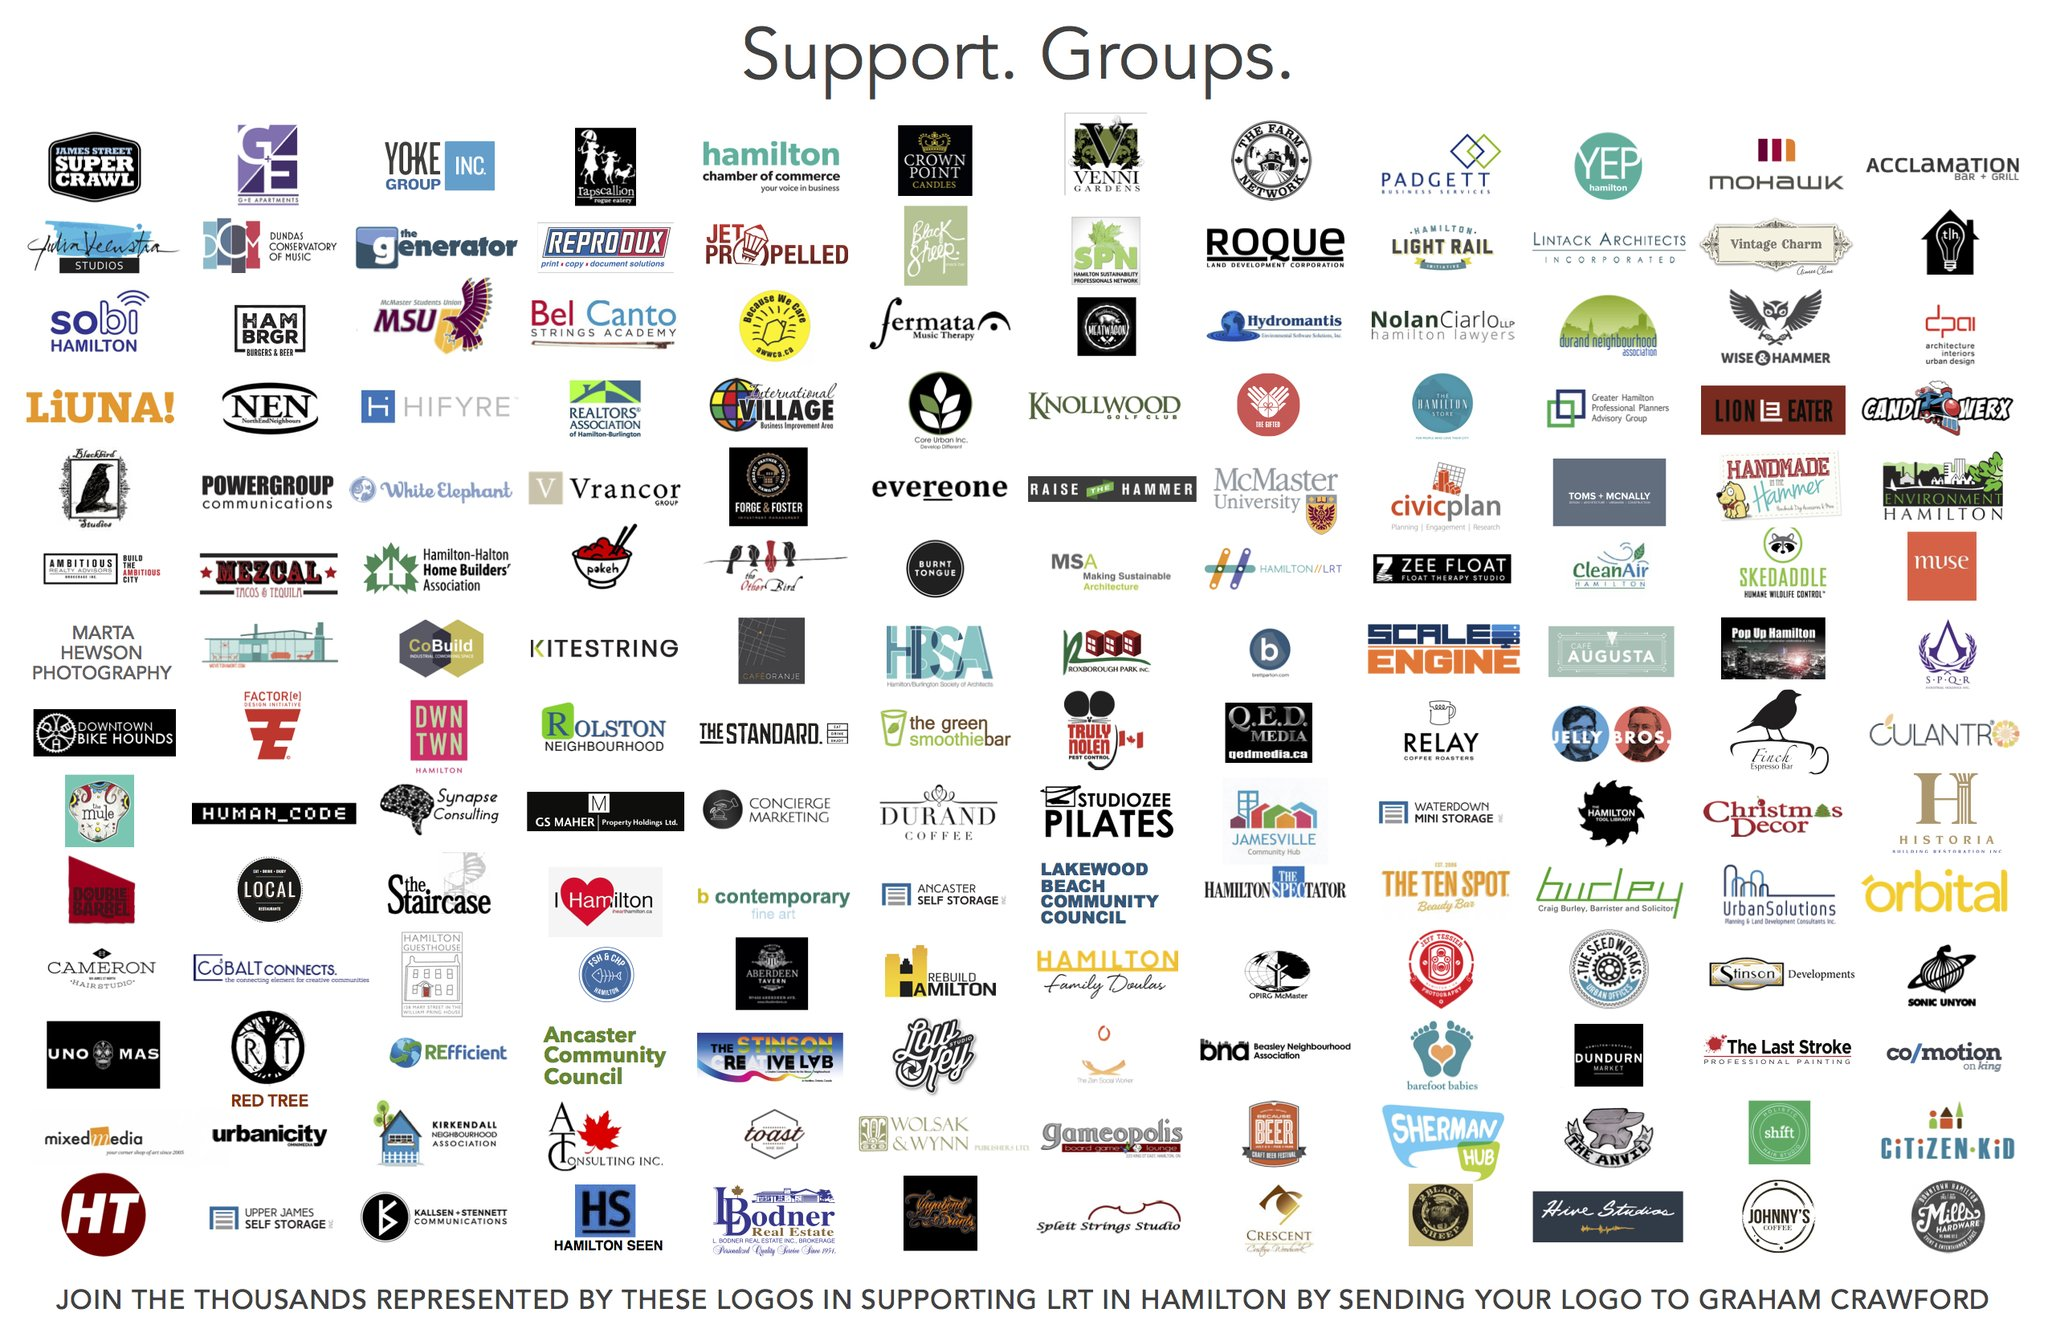 LRT Support Groups, up to 168 organizations now